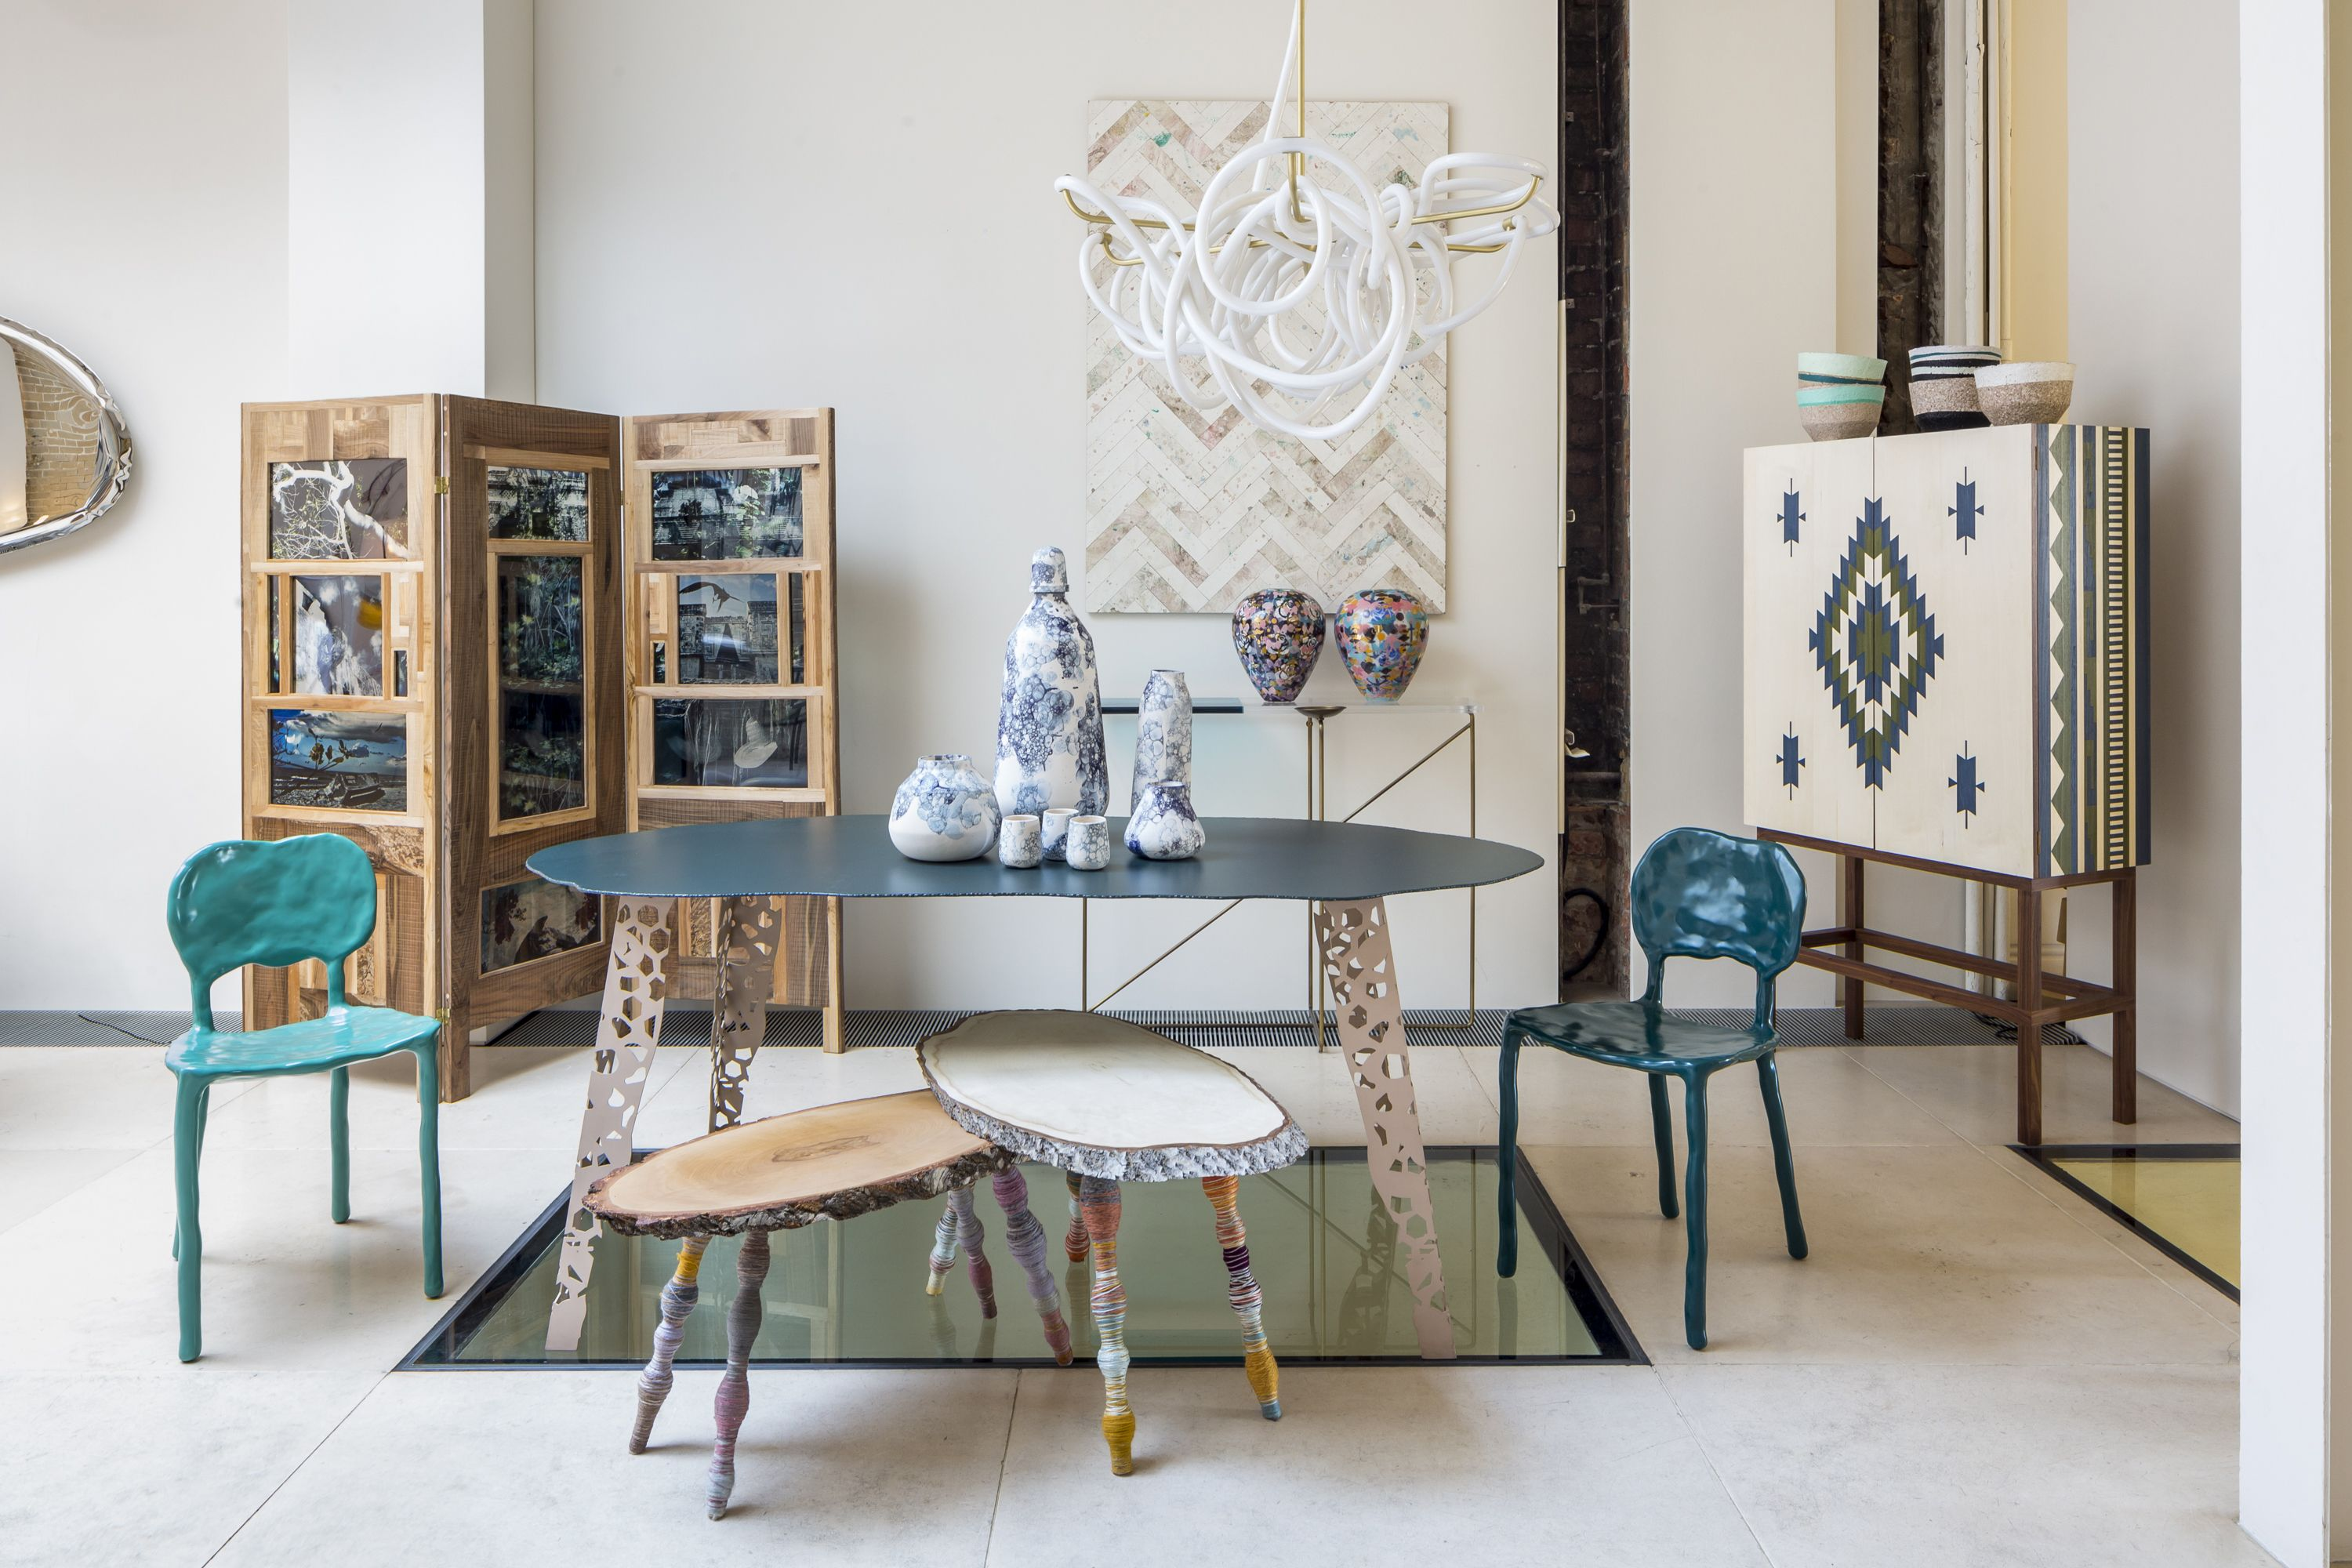 13 Design Stores To Inspire Your Home Decor